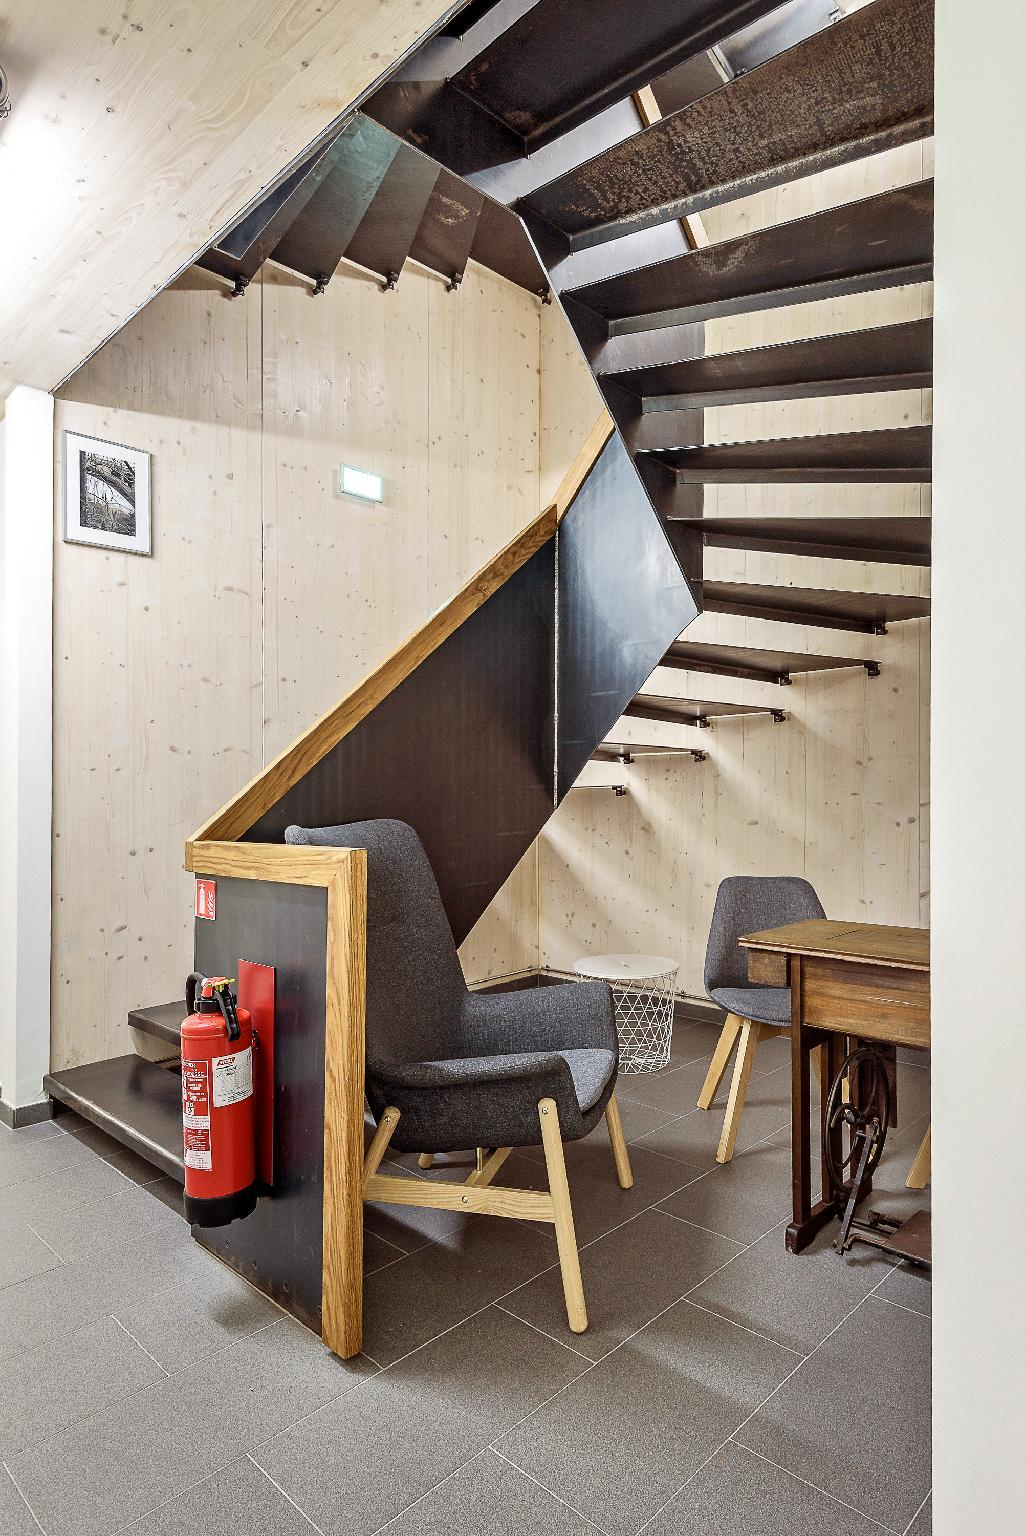 Vistay apartments, Luxembourg